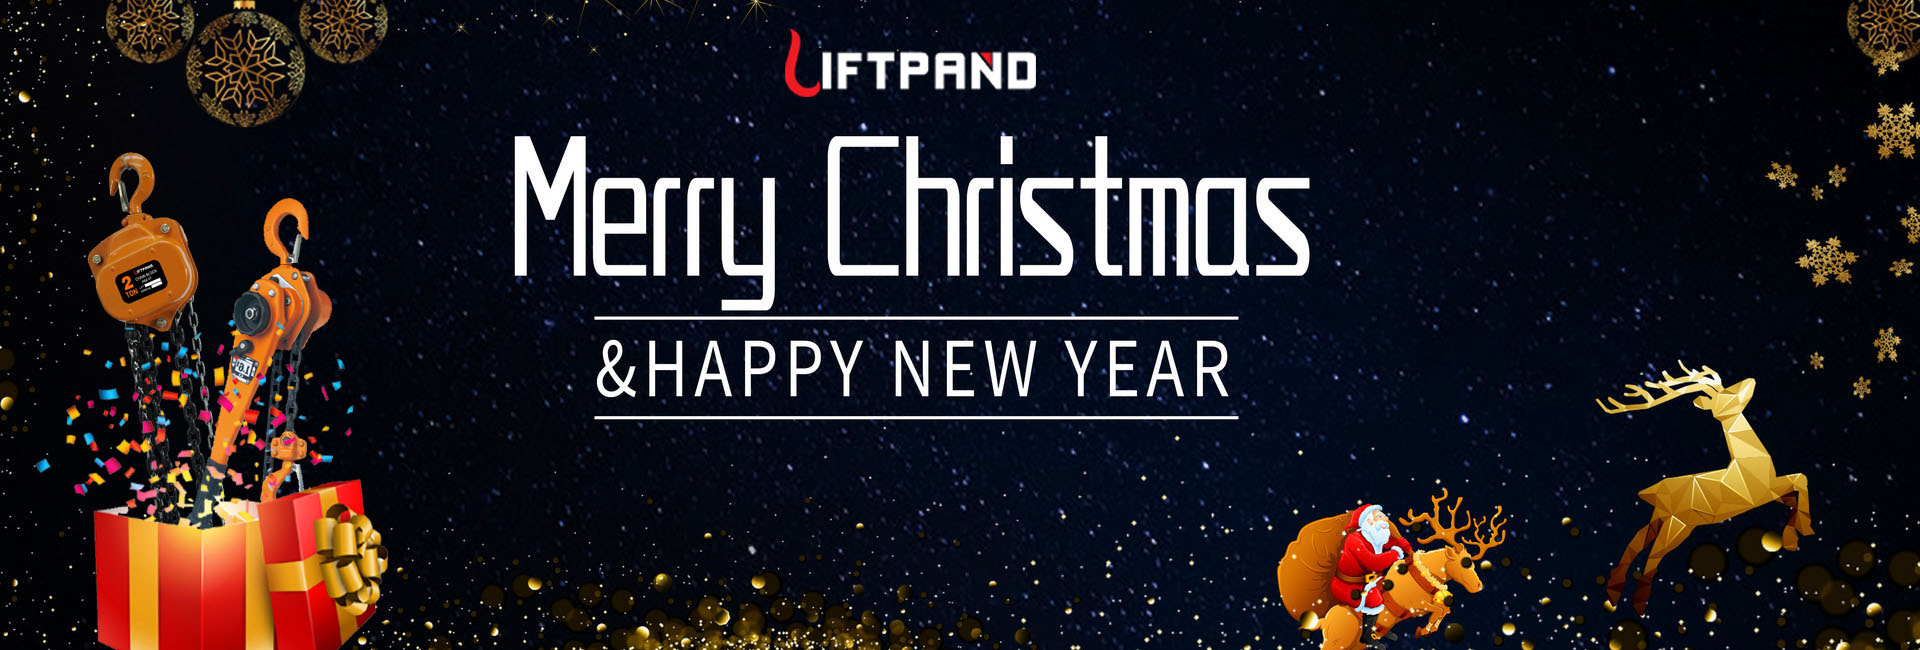 Liftpand Merry Christmas Wishes